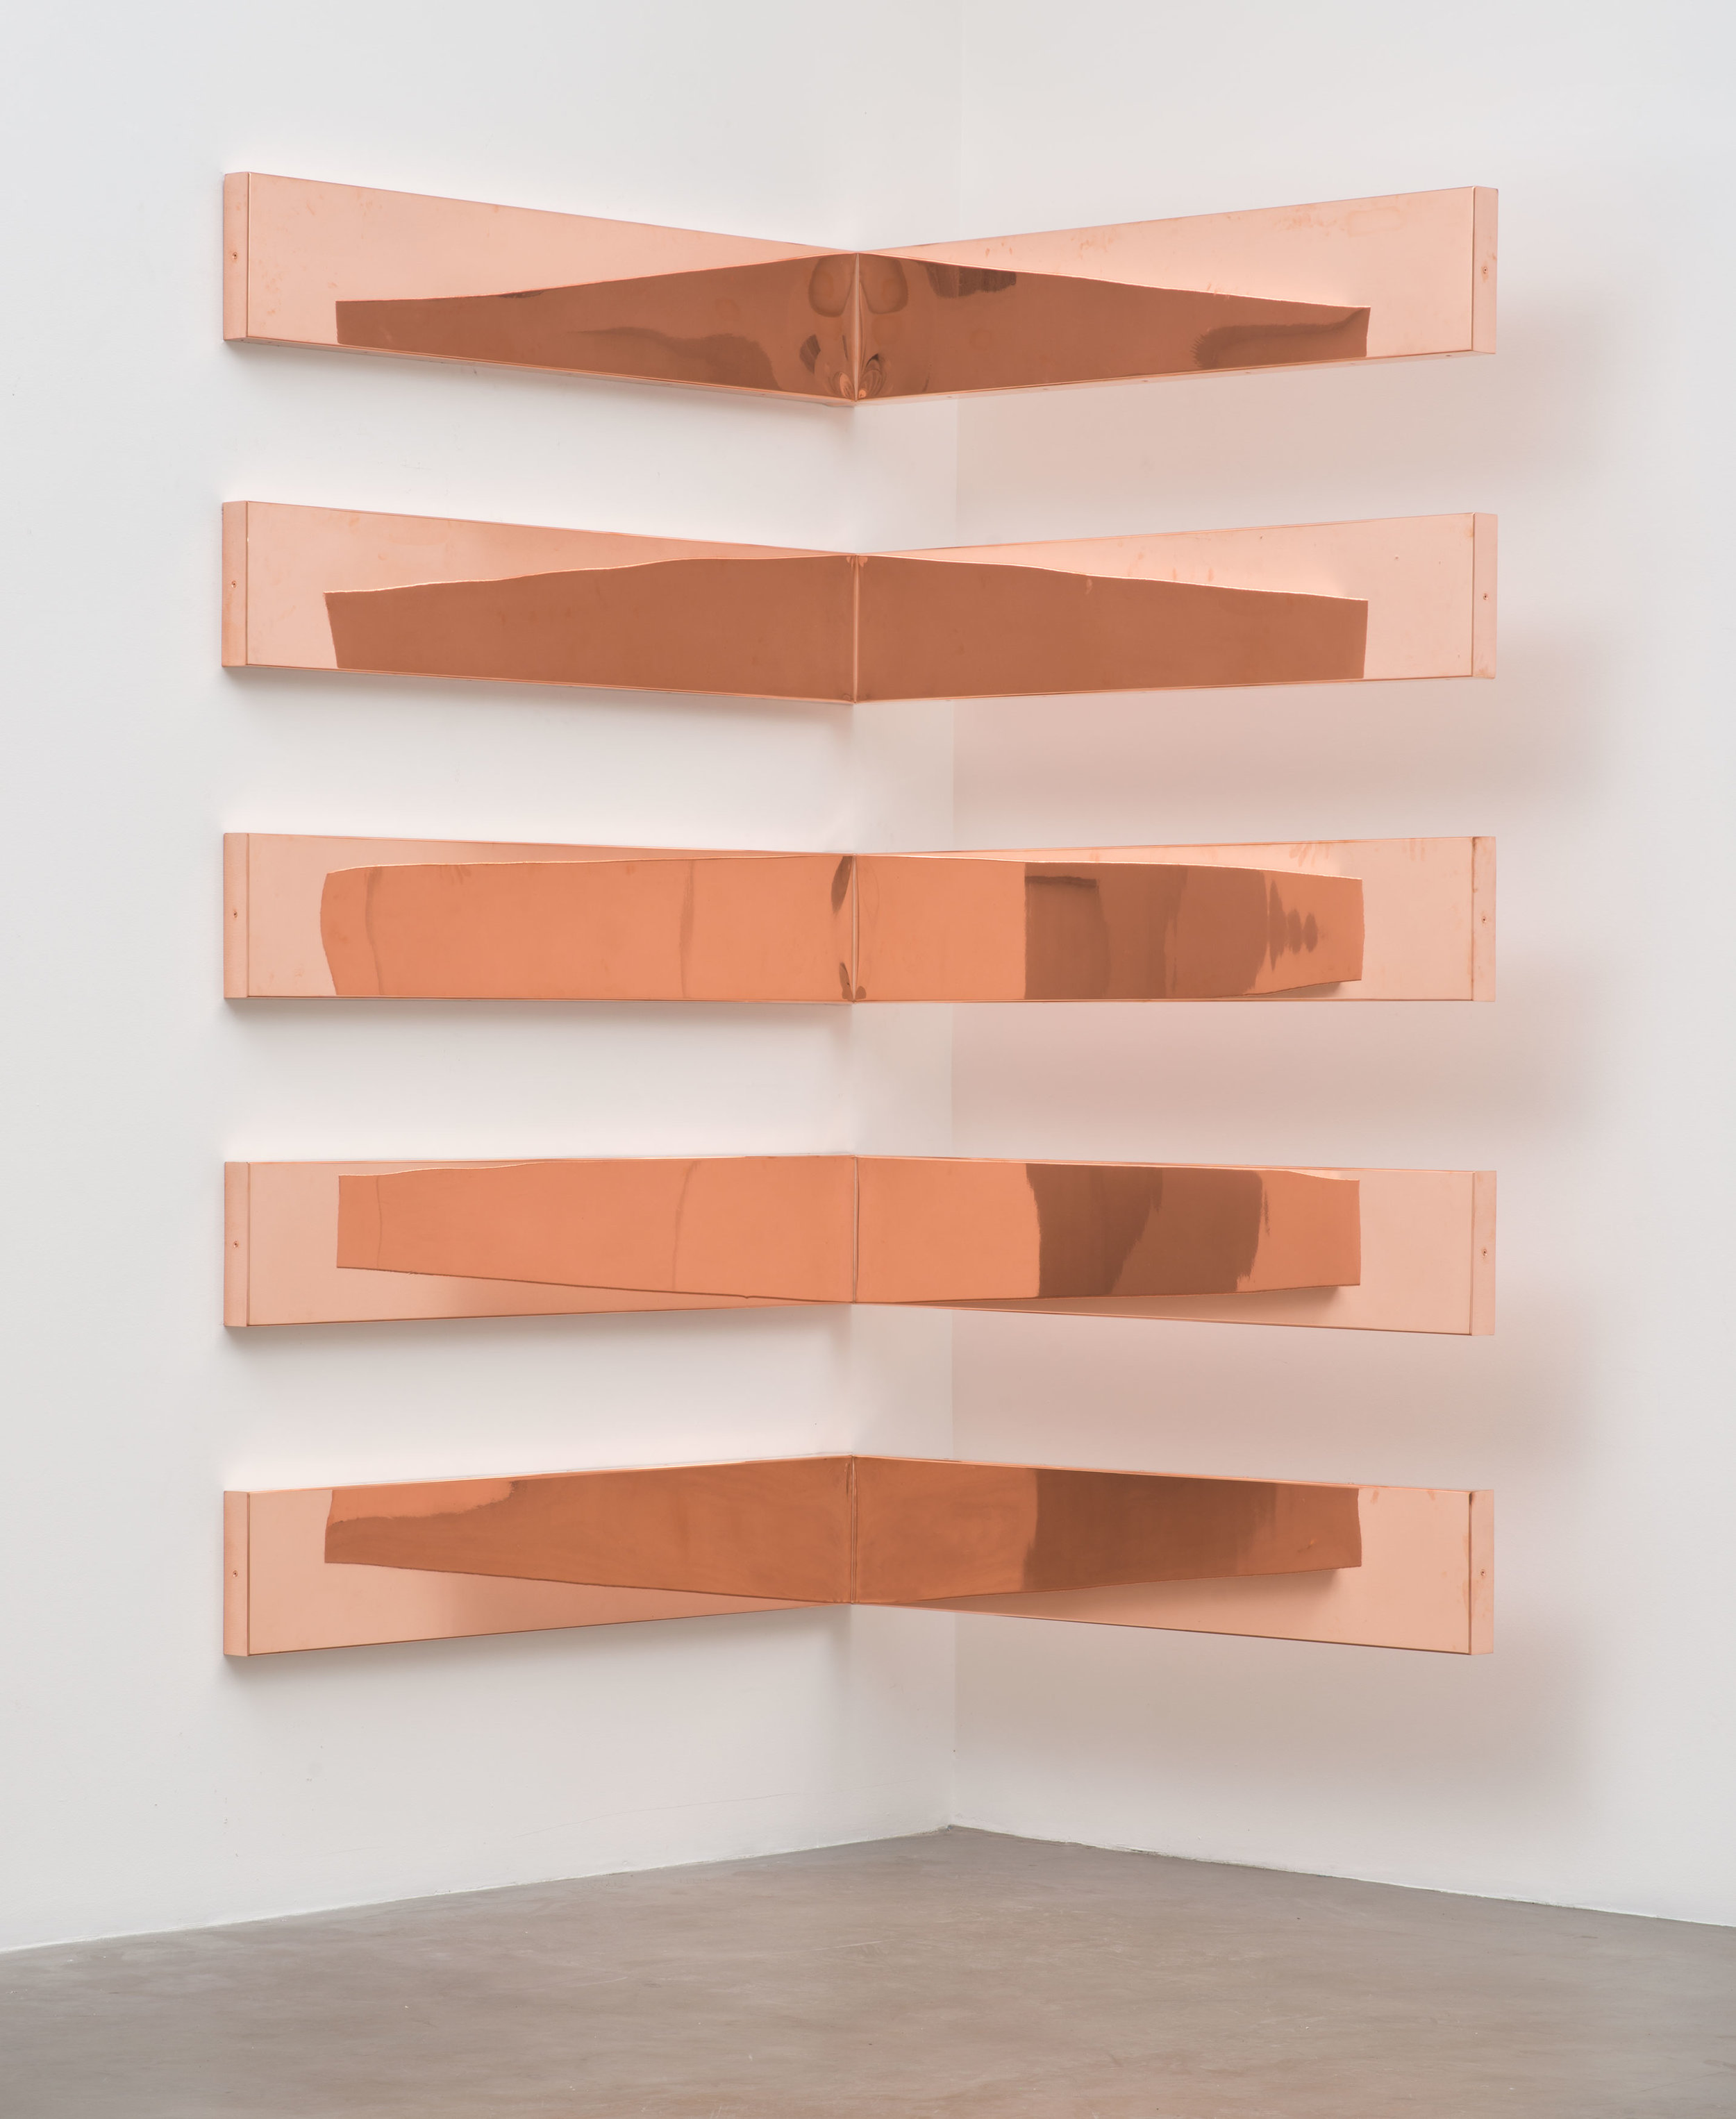 """Copper Surrogate (60"""" x 120"""" 48 ounce C11000 Copper Alloy, 90º Bend, 60""""Bisection/5 Sections: December 4/December 7, 2014, Miami Beach, Florida, February 10–12, 2015, Los Angeles, California)    2014–   Polished copper  11 x 60 x 60 inches each, 5 parts  Surrogates (Modular, Art Handling), 2014–"""